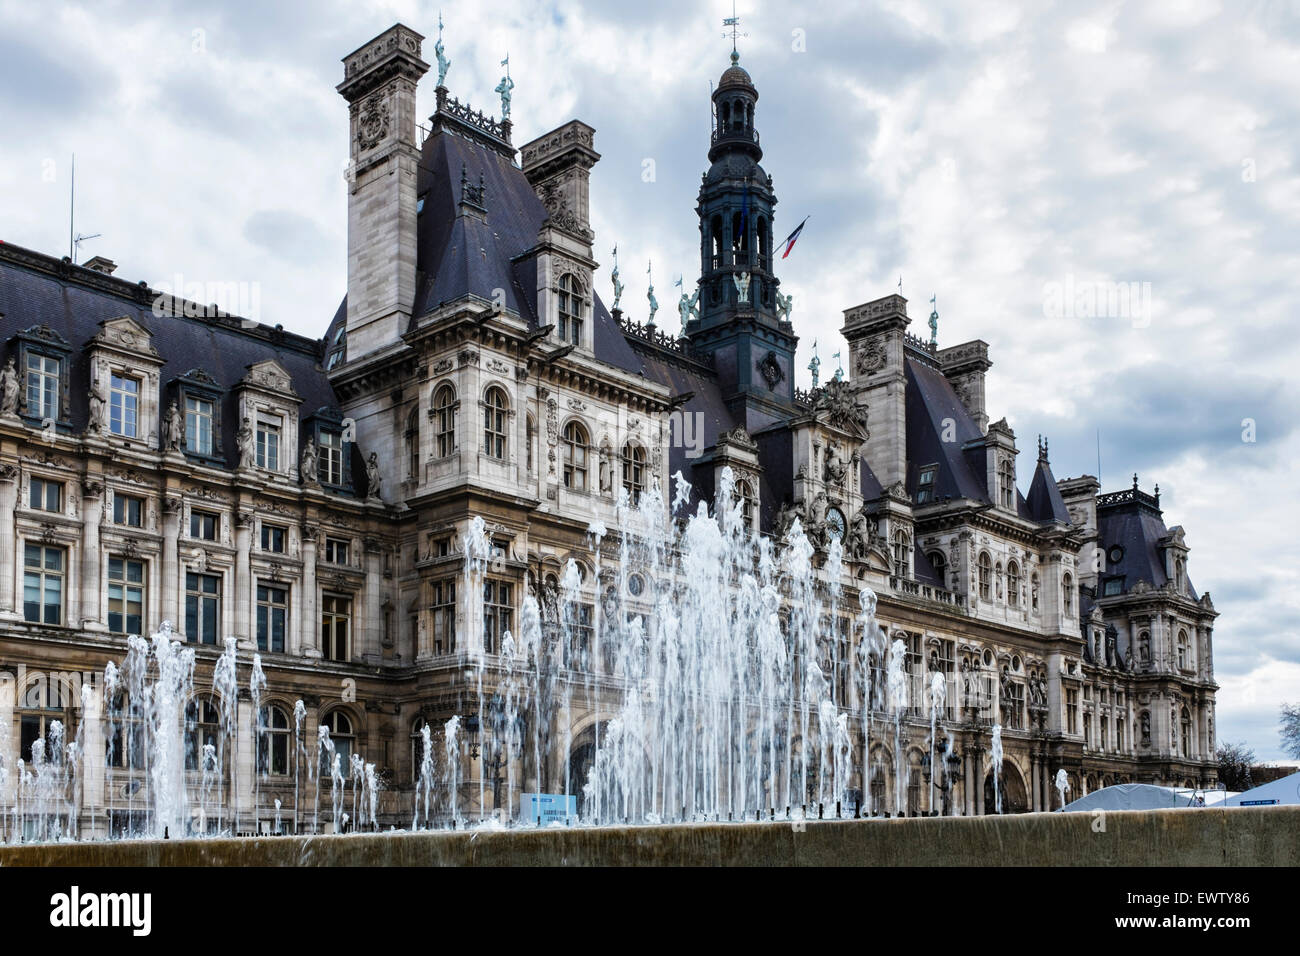 Paris Hotel de Ville, Mairie or city hall housing city's administration. French renaissance style architecture - Stock Image